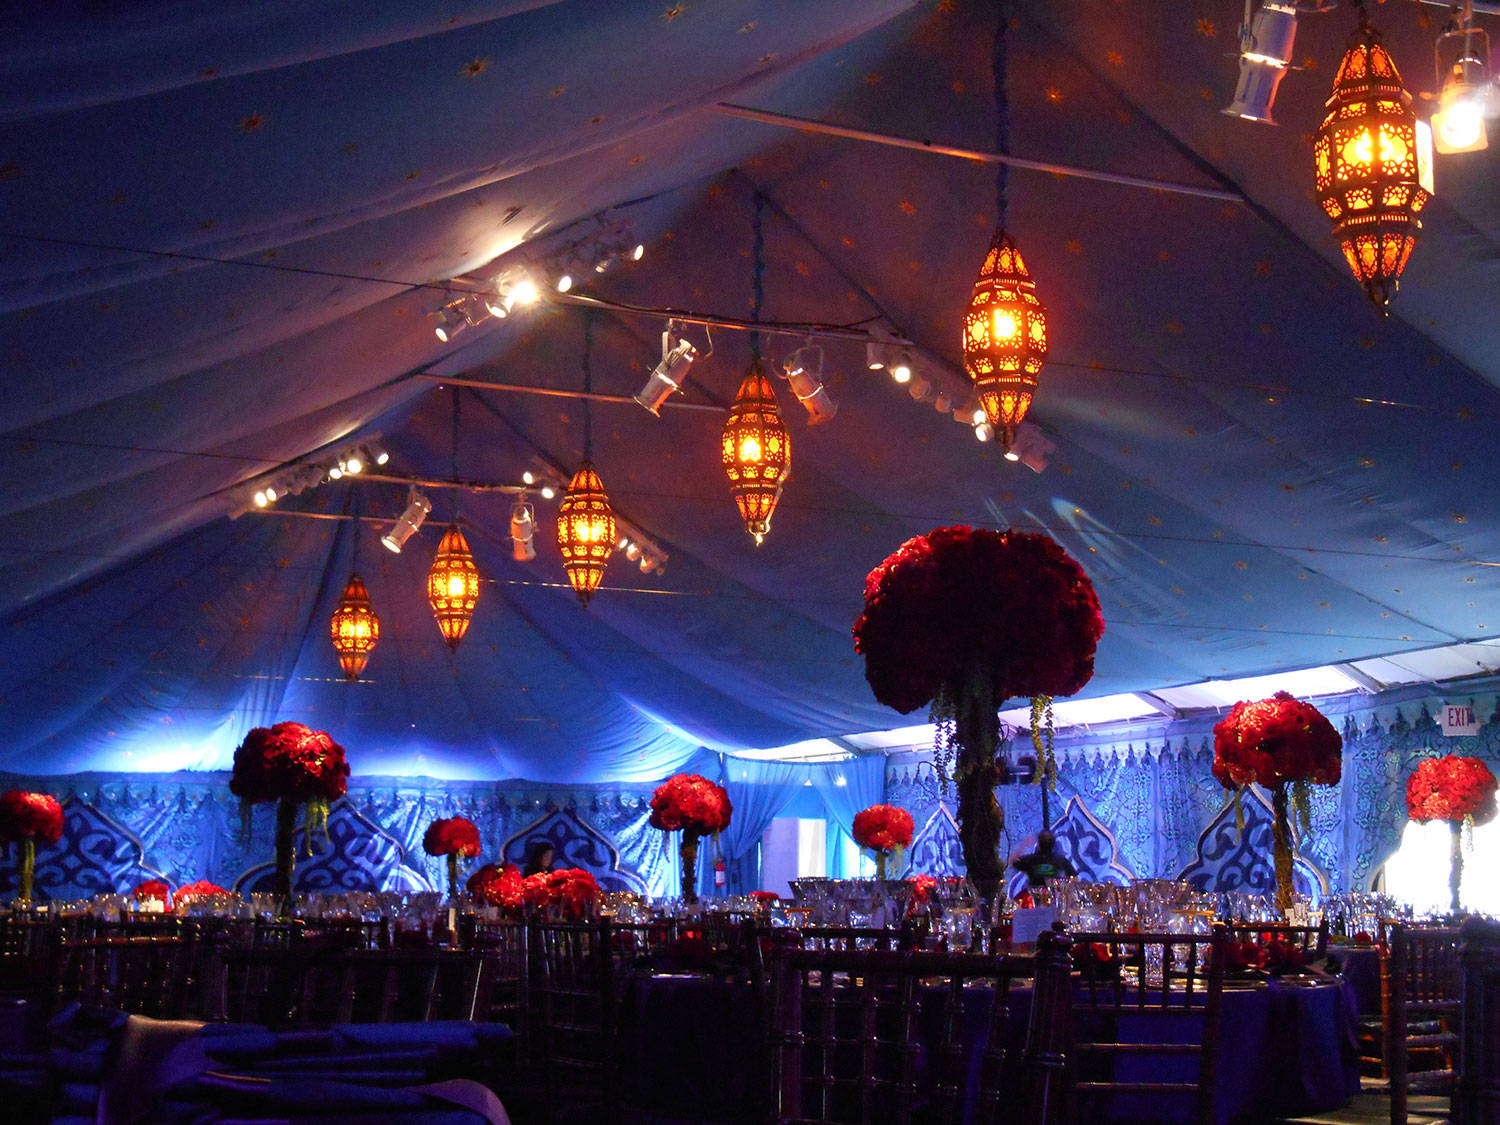 raj-tents-frame-tent-linings-mughal-arches-and-ajmer.jpg